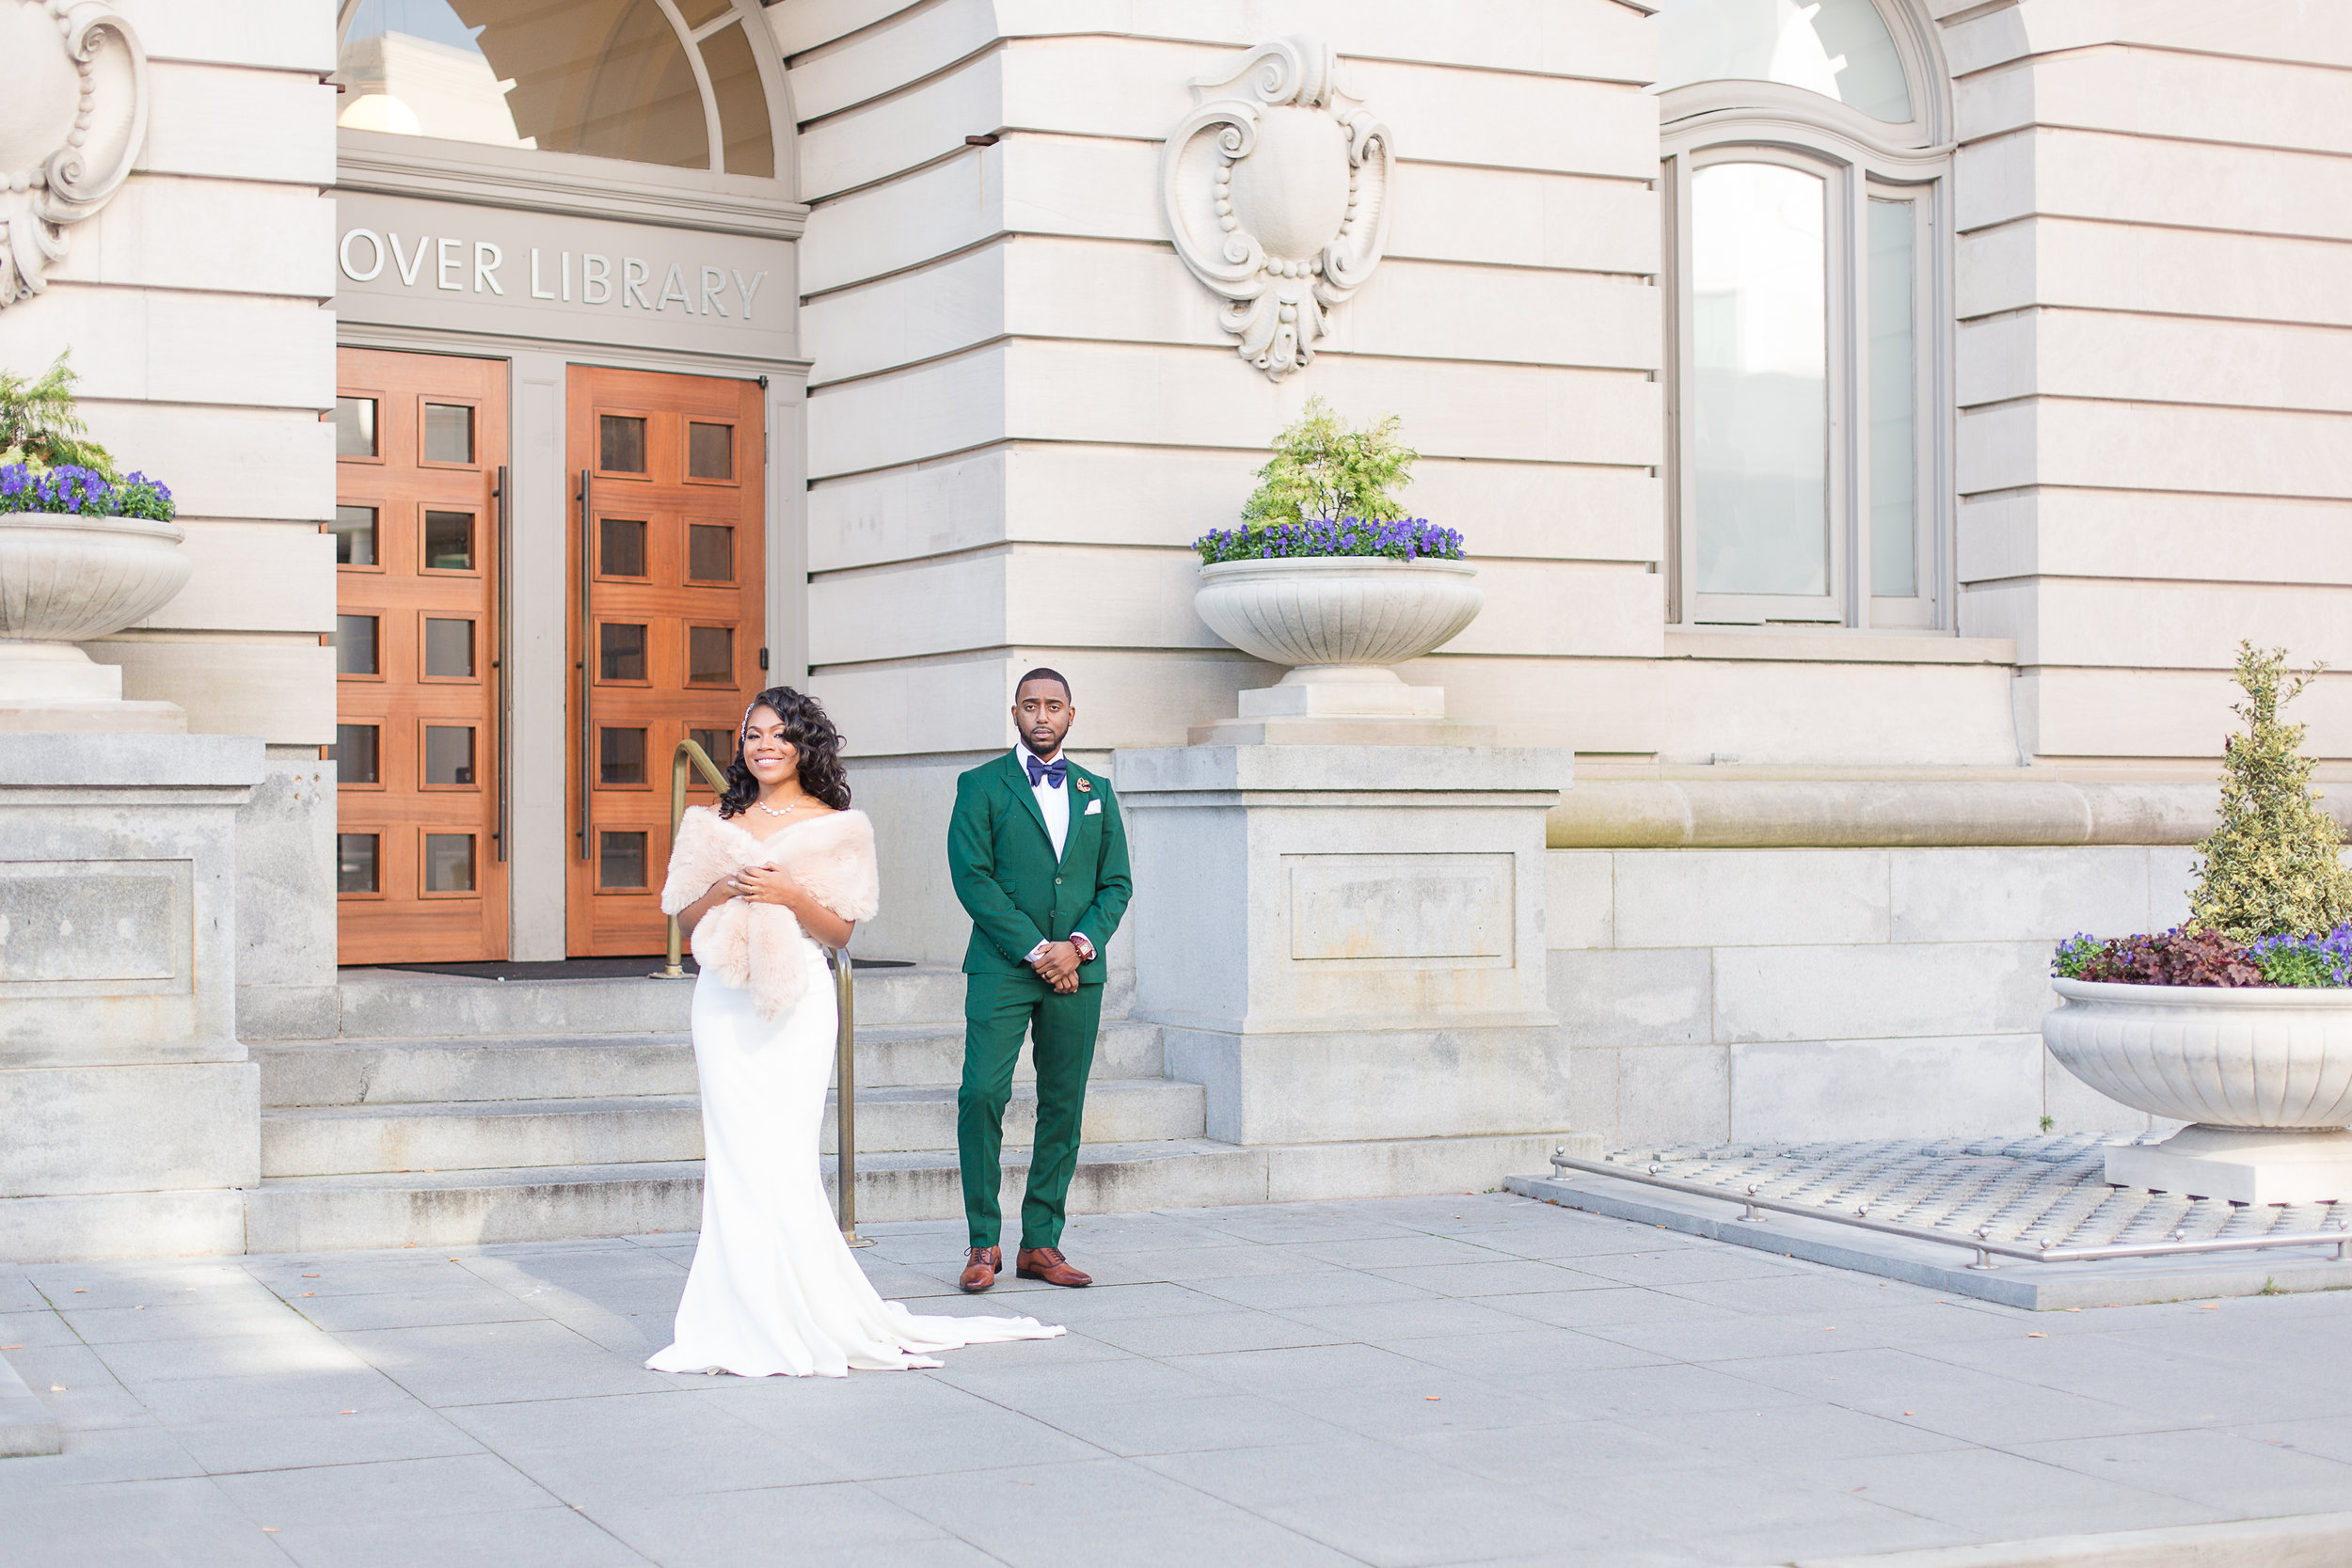 slover_library_wedding_downtown_norfolk